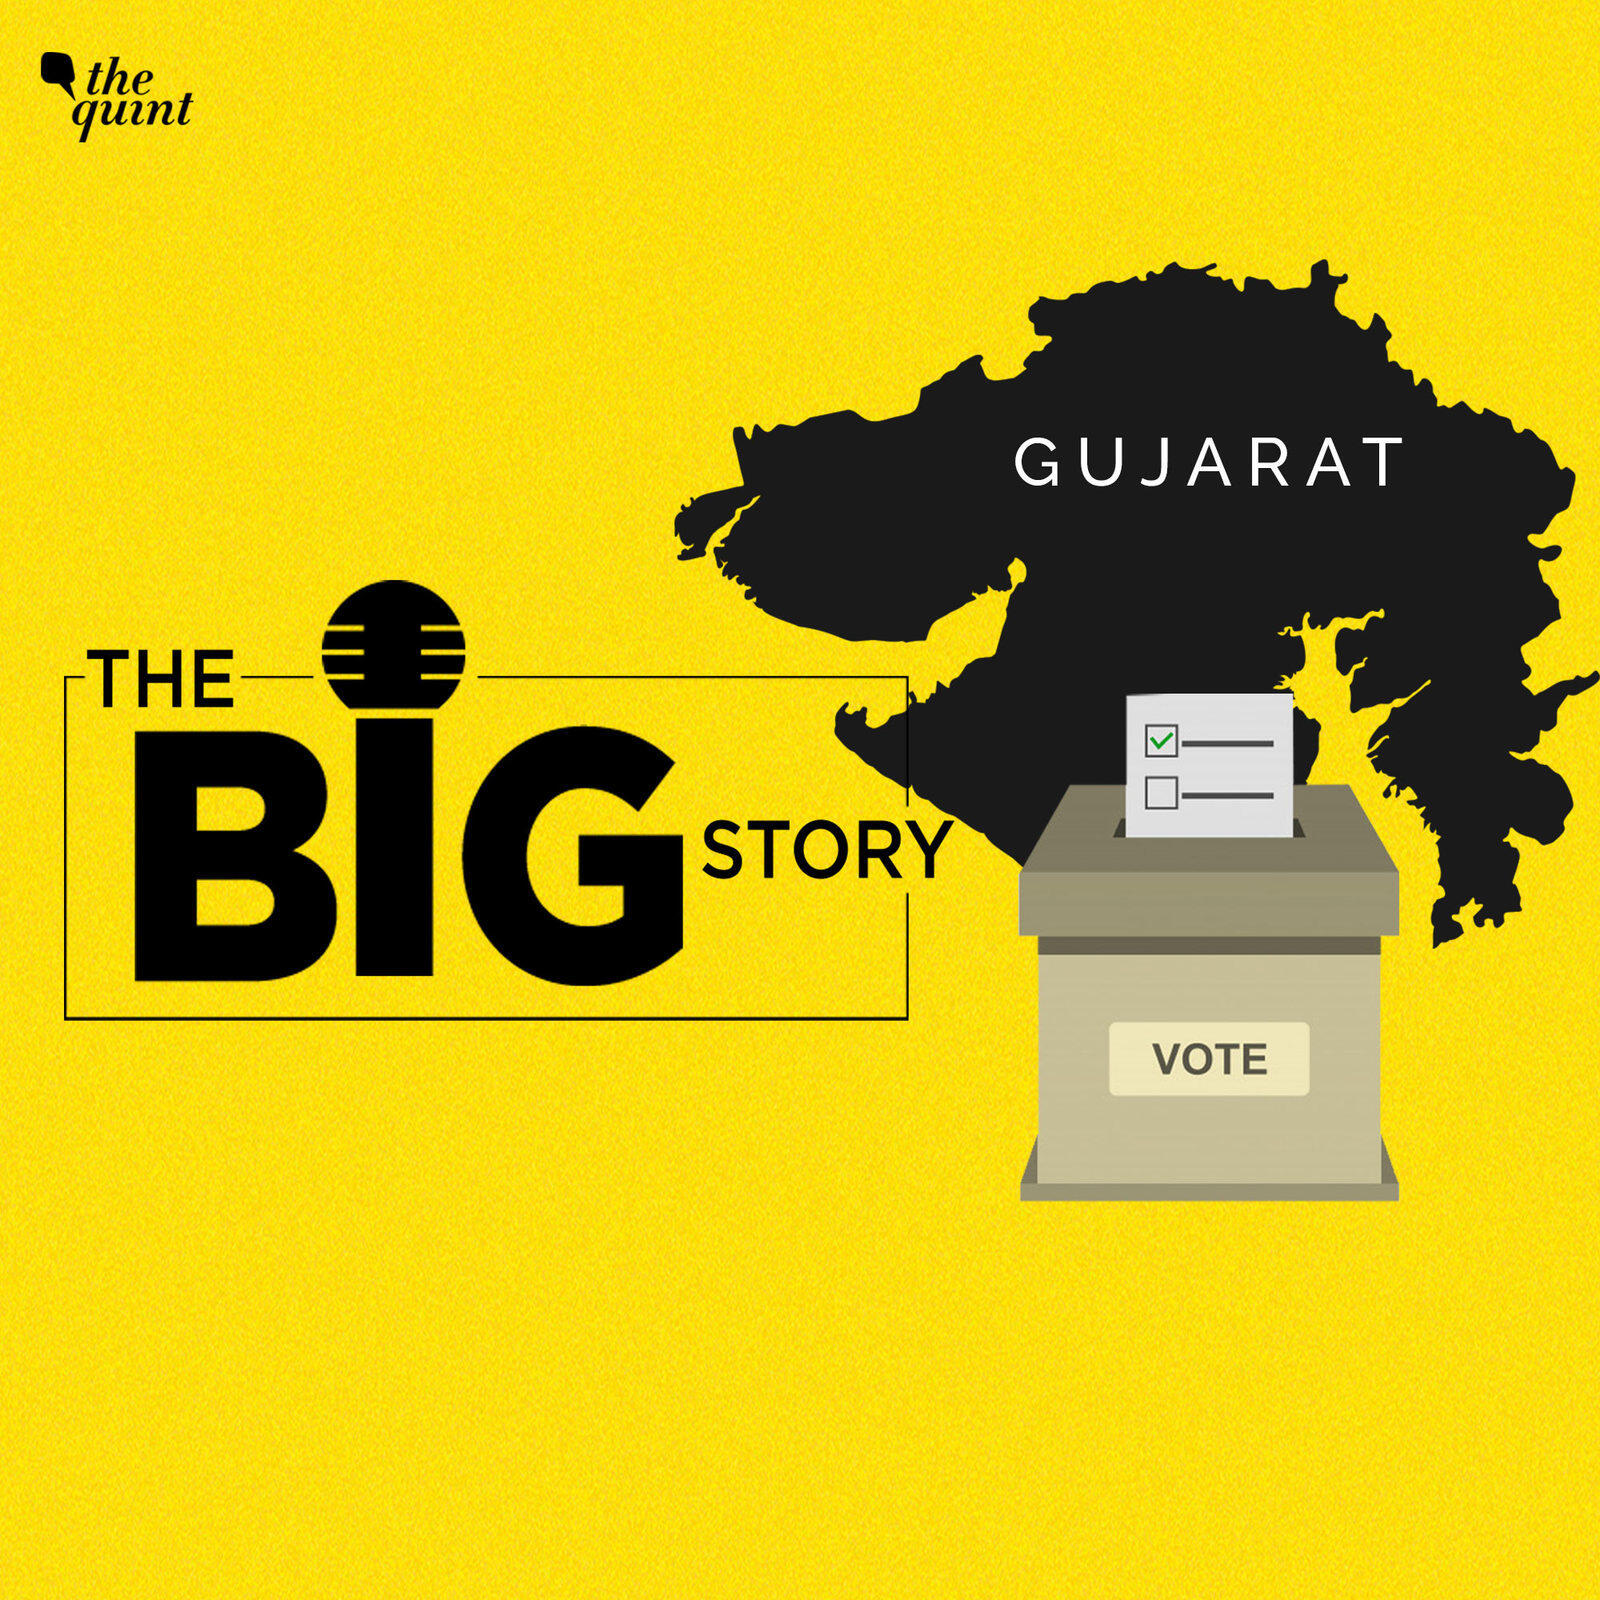 644: What Led to Aam Aadmi Party's Surat Win in Gujarat Civic Polls?